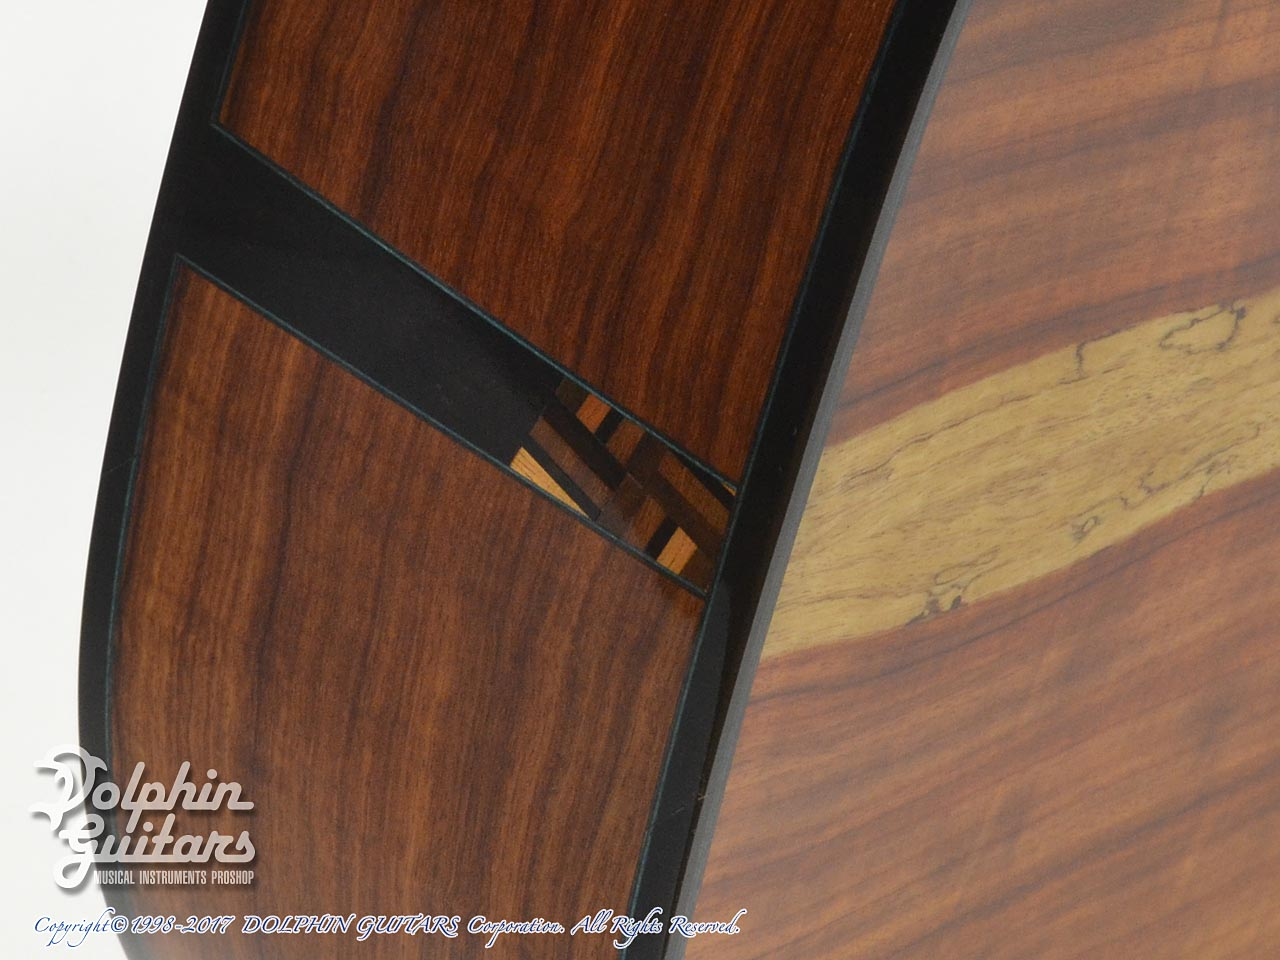 Luca Canteri Guitars: The Xover (9)